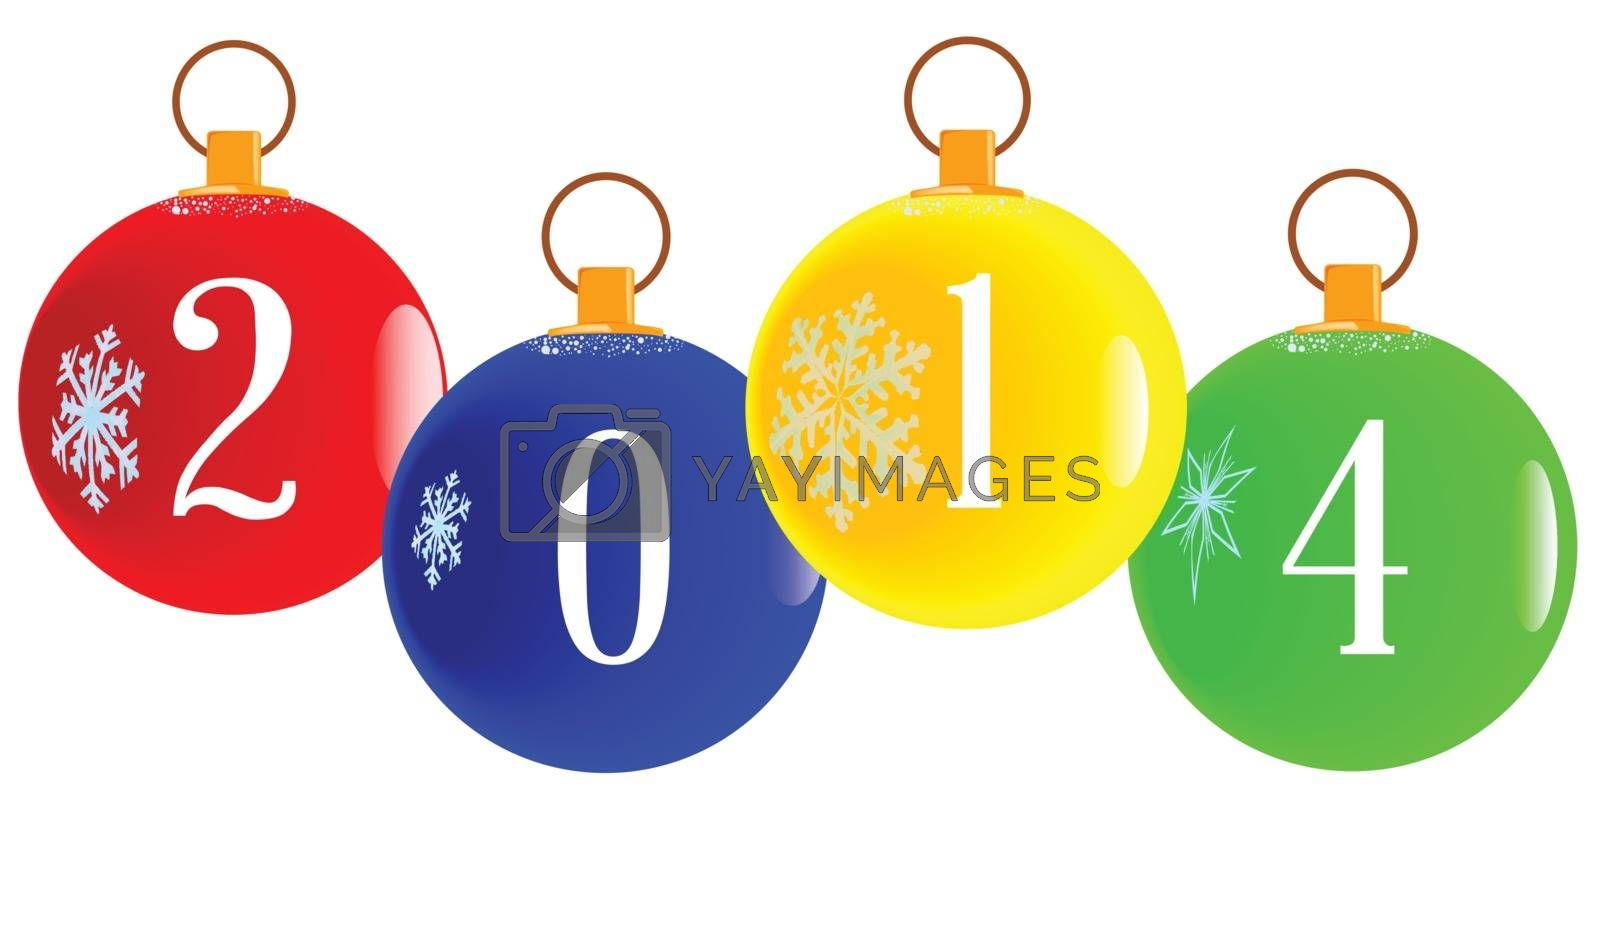 A red christmas decorative ball with the letters 2014